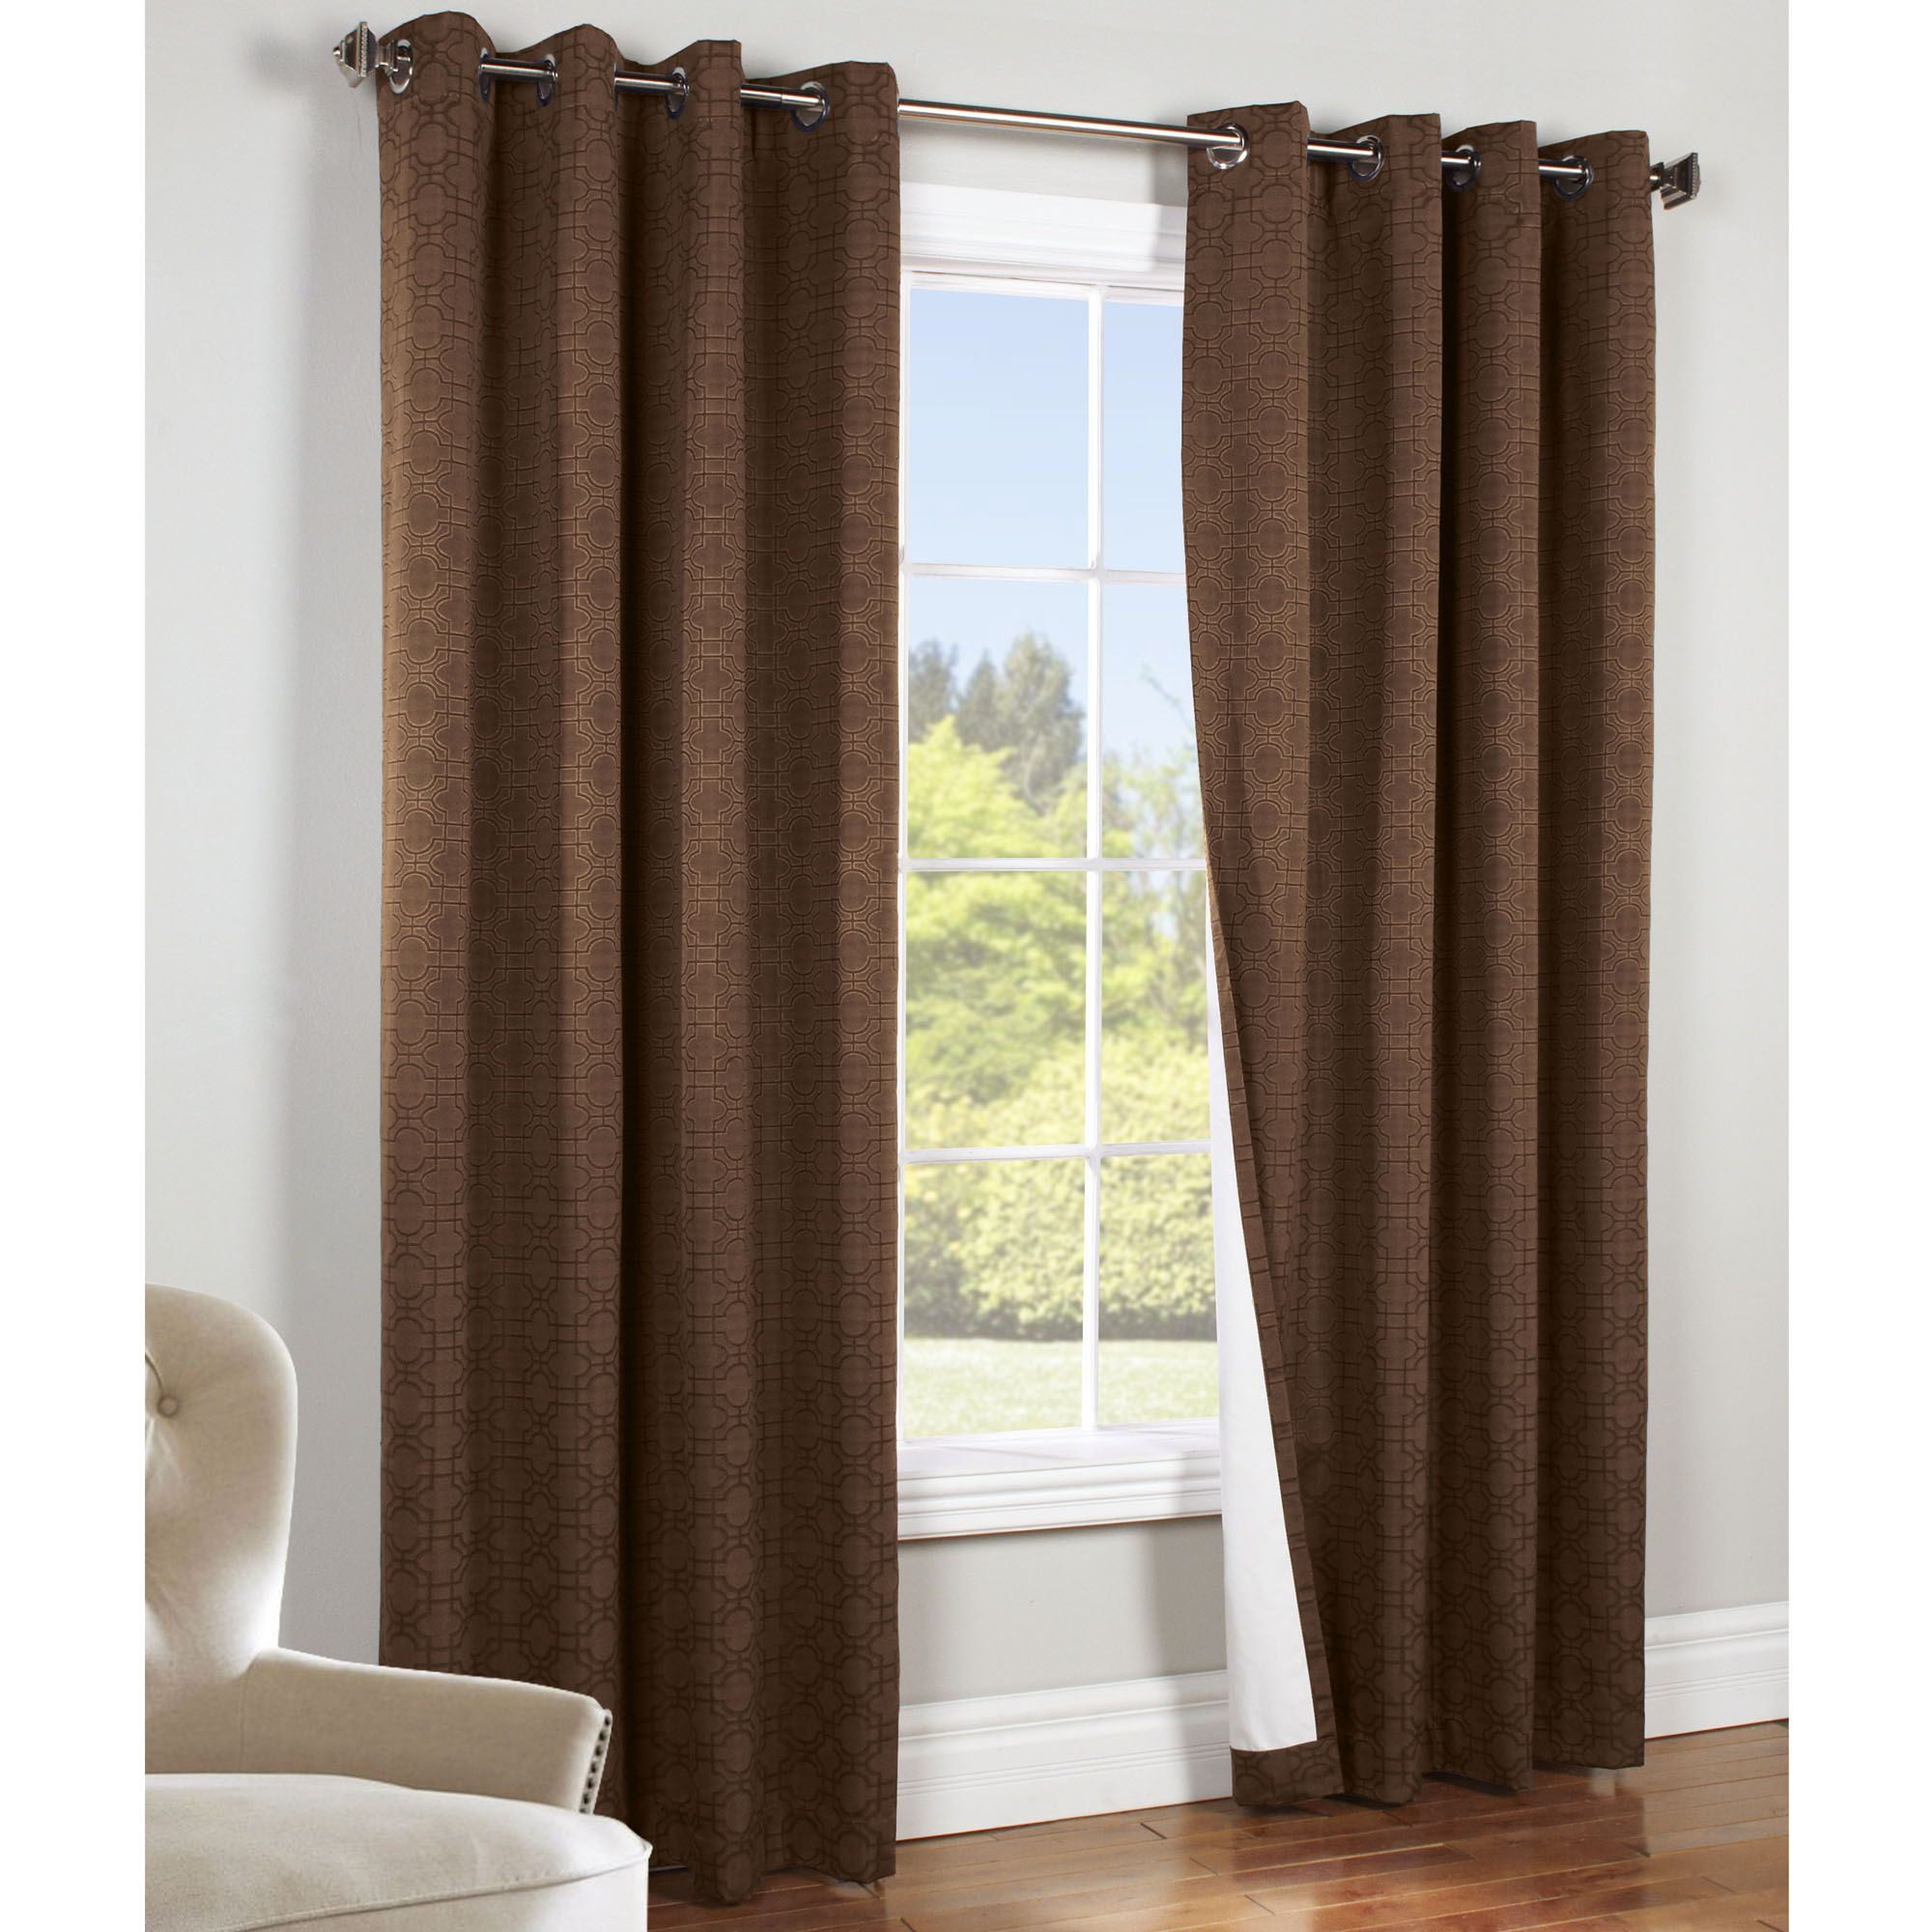 Irongate thermaplus total blackout grommet curtain panels